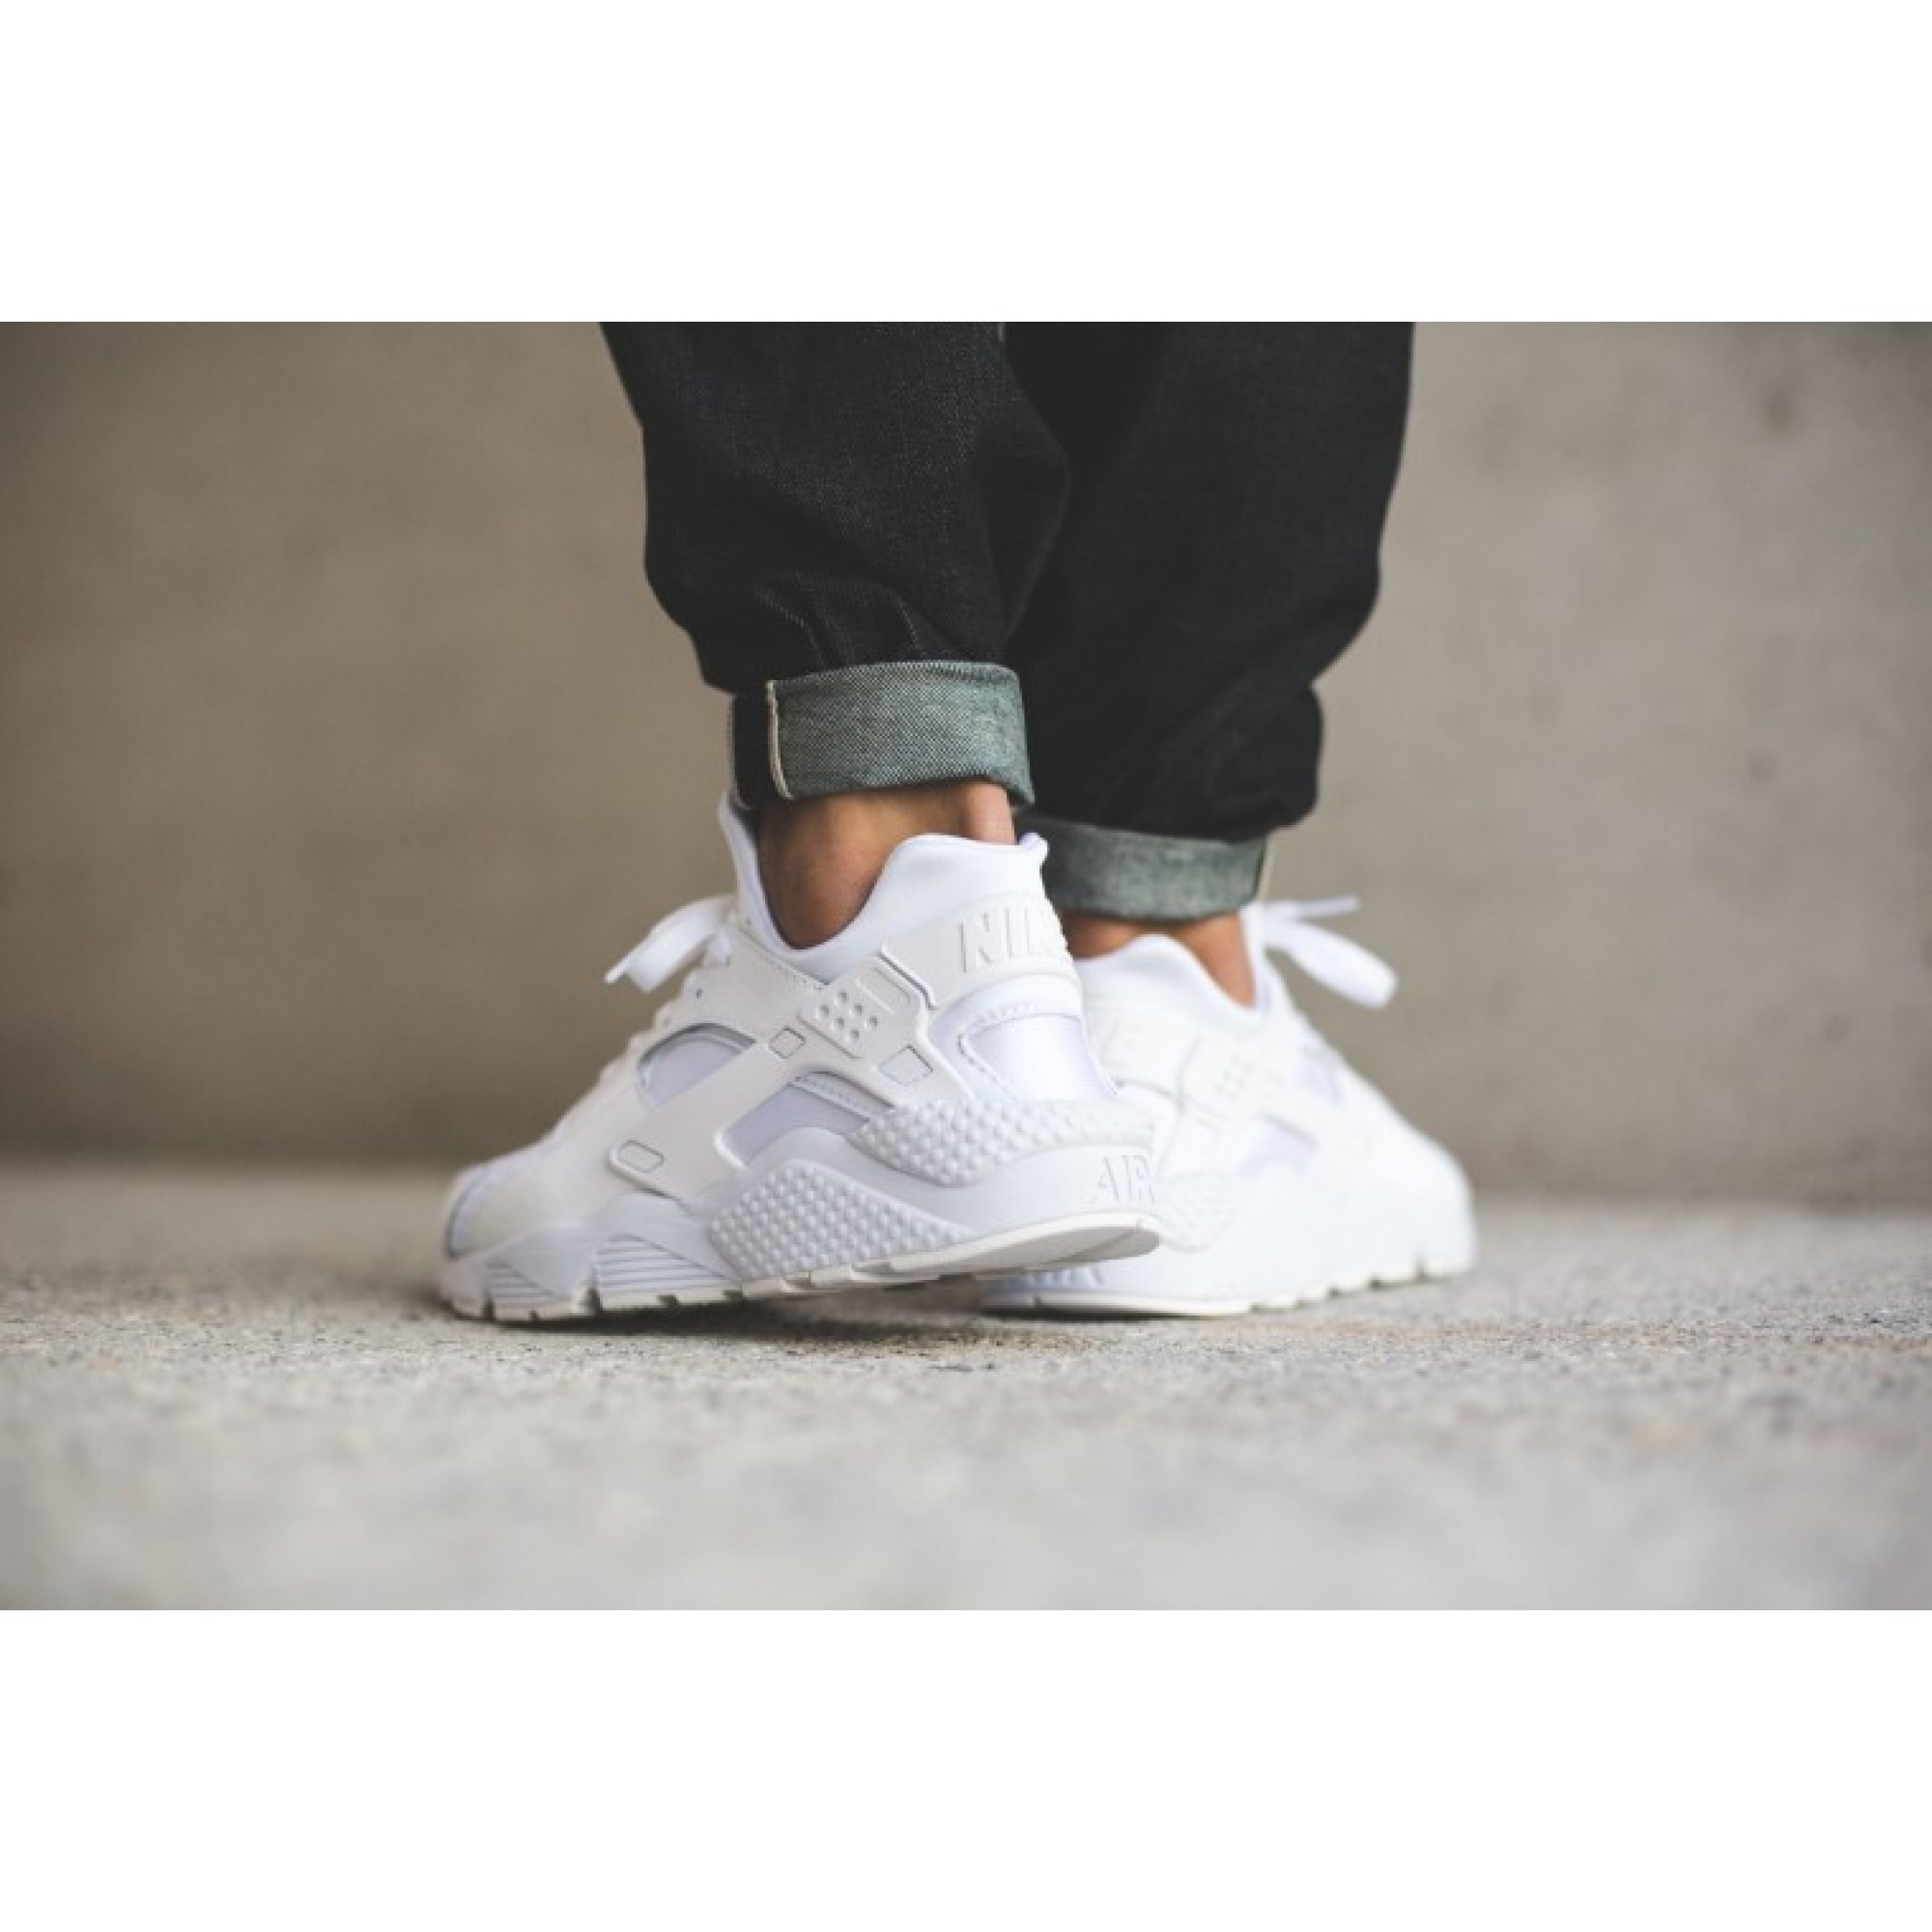 timeless design 139a1 2f0a0 Men s Nike Air Huarache Triple White   318429-111